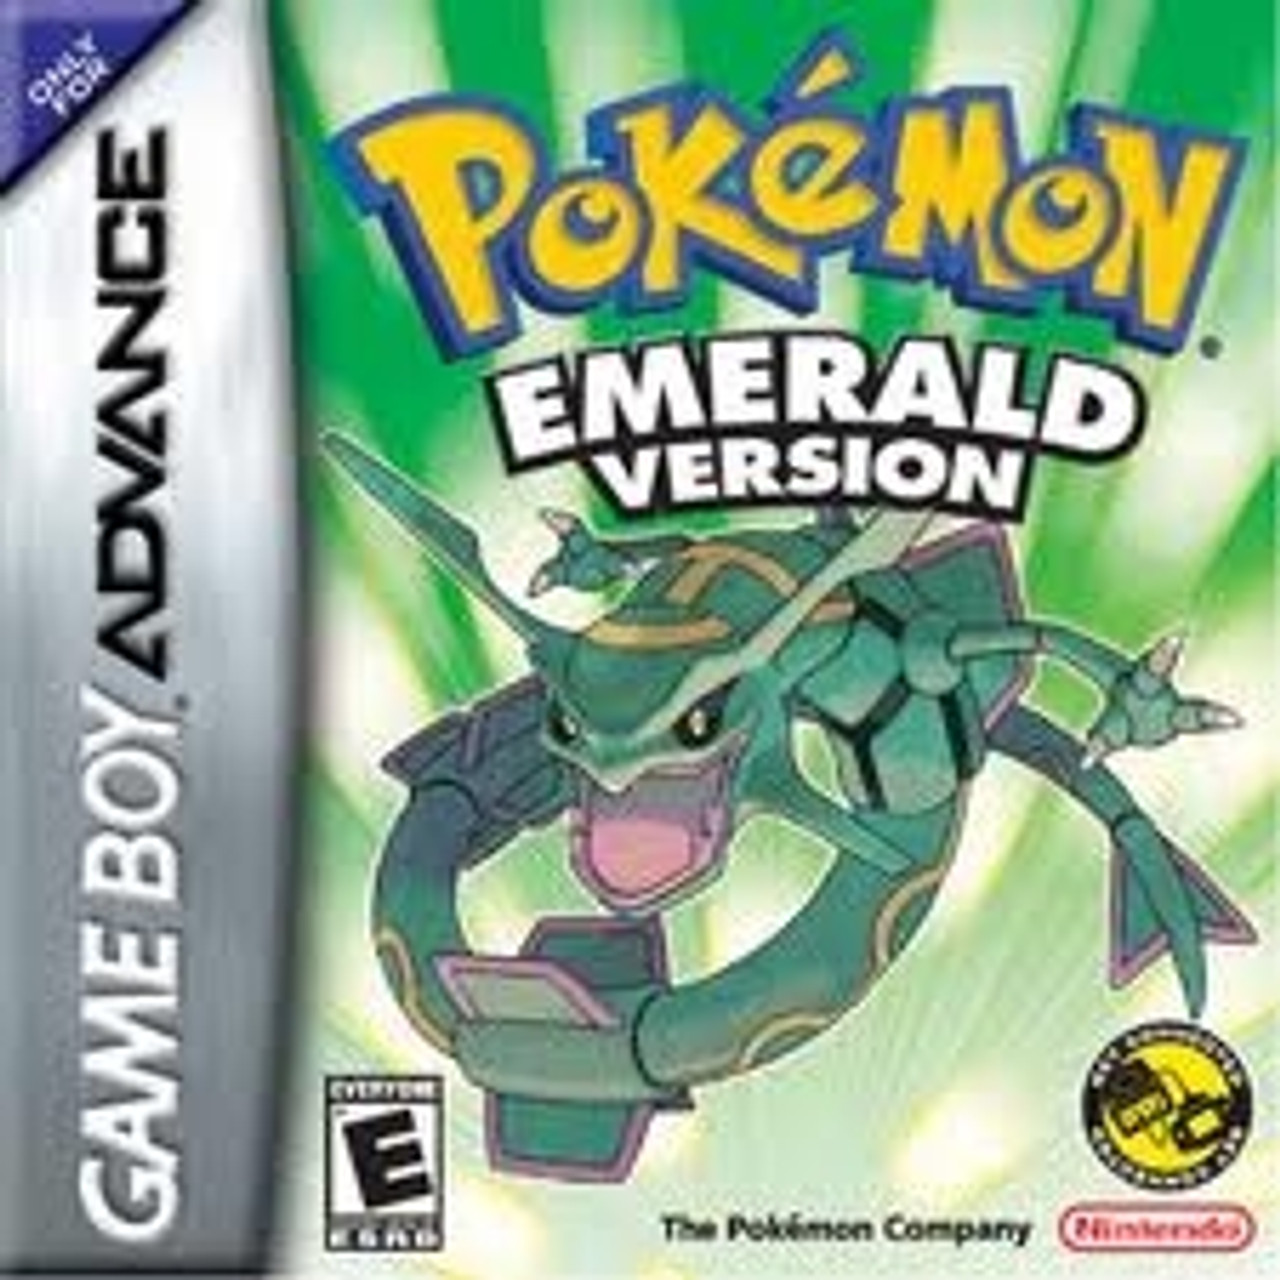 Pokemon Emerald Version - Game Boy Advance Game